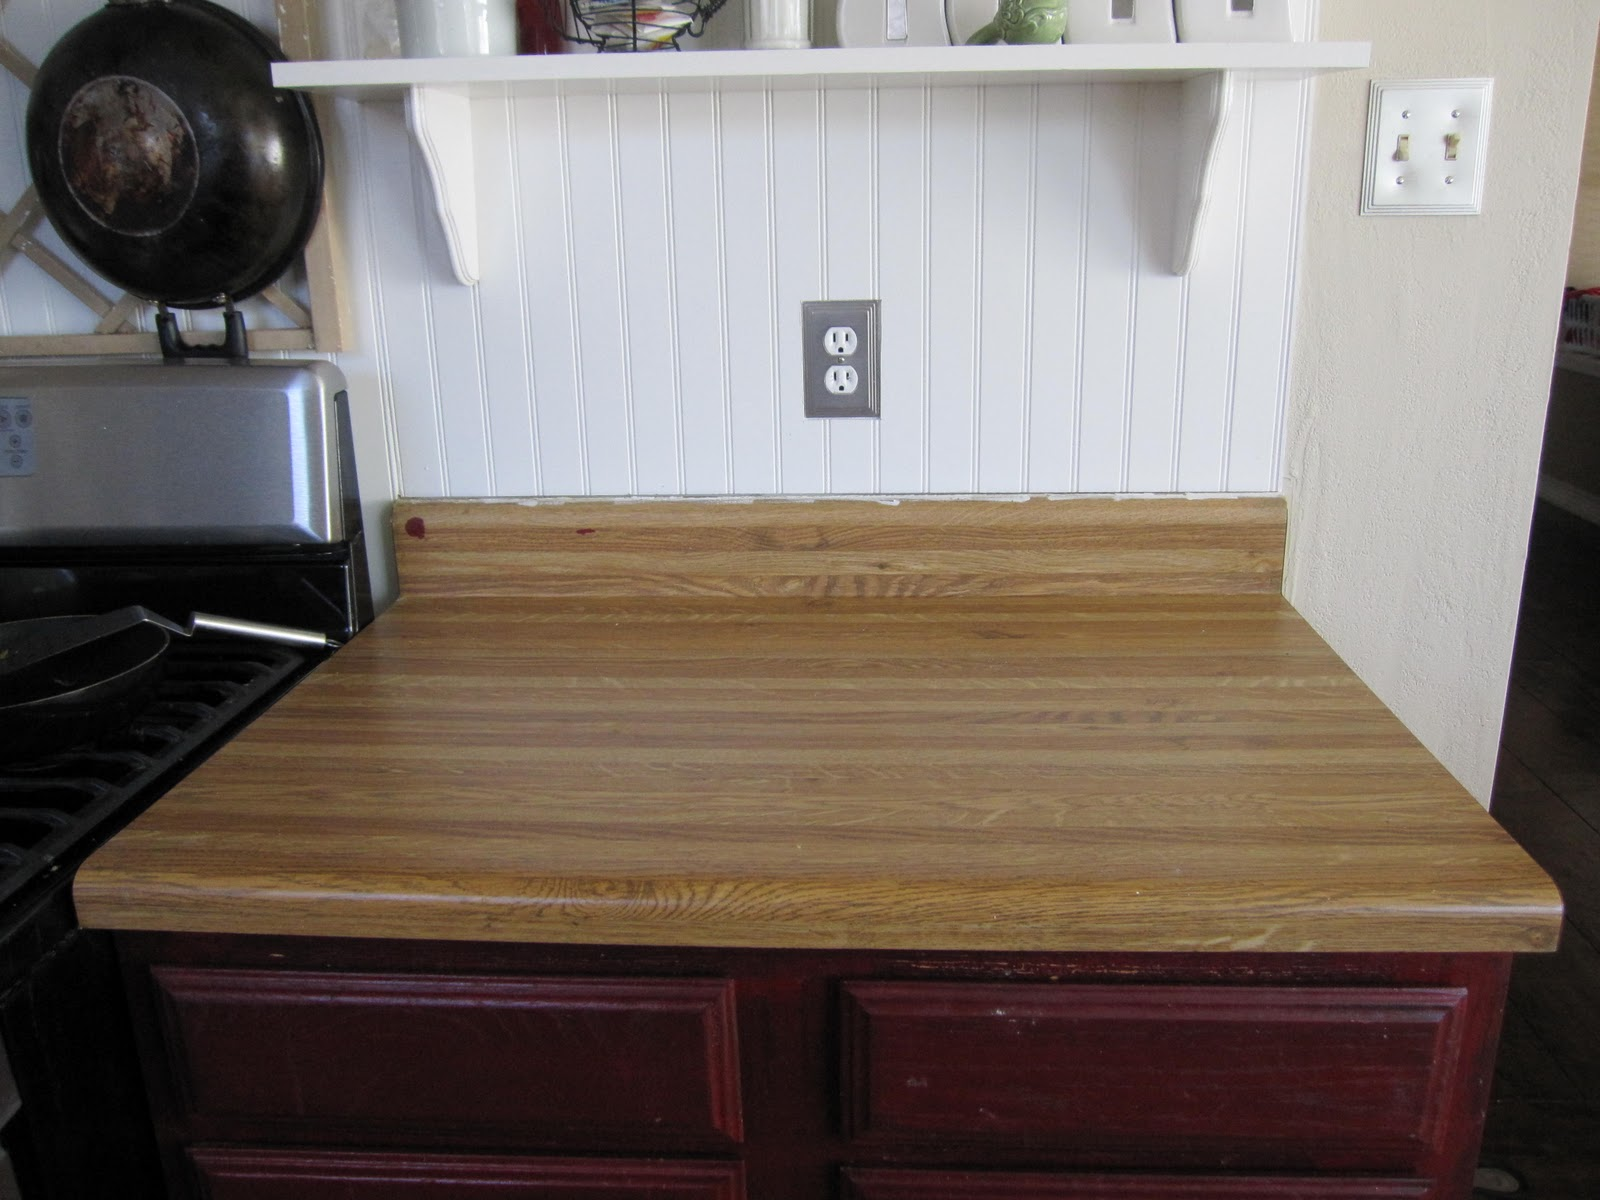 (Before) DIY Faux Butcher Block Countertops: How to Make Faux Butcher Block Countertops